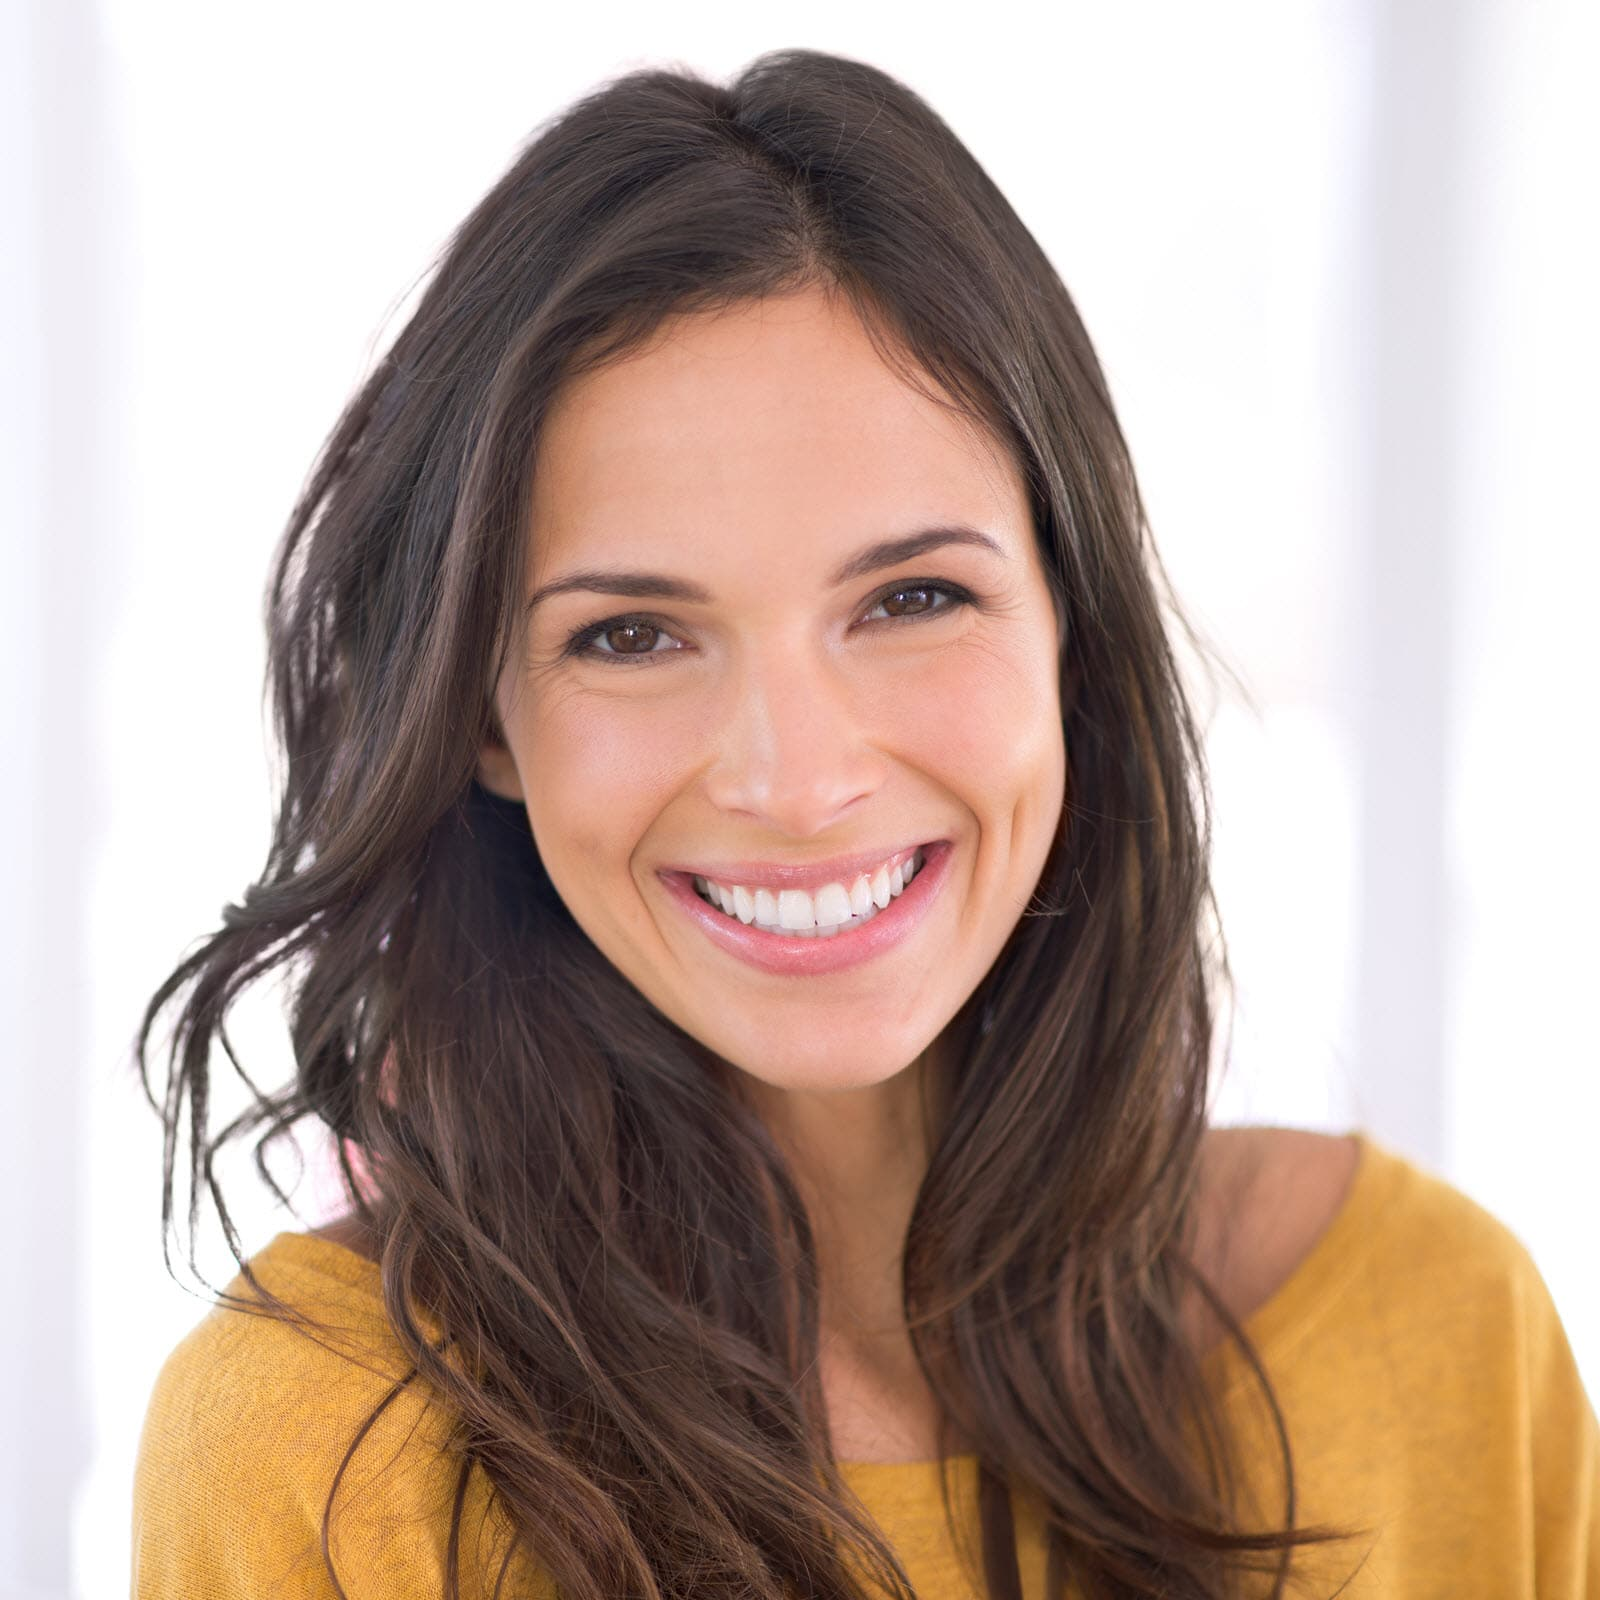 A smiling young woman with long hair